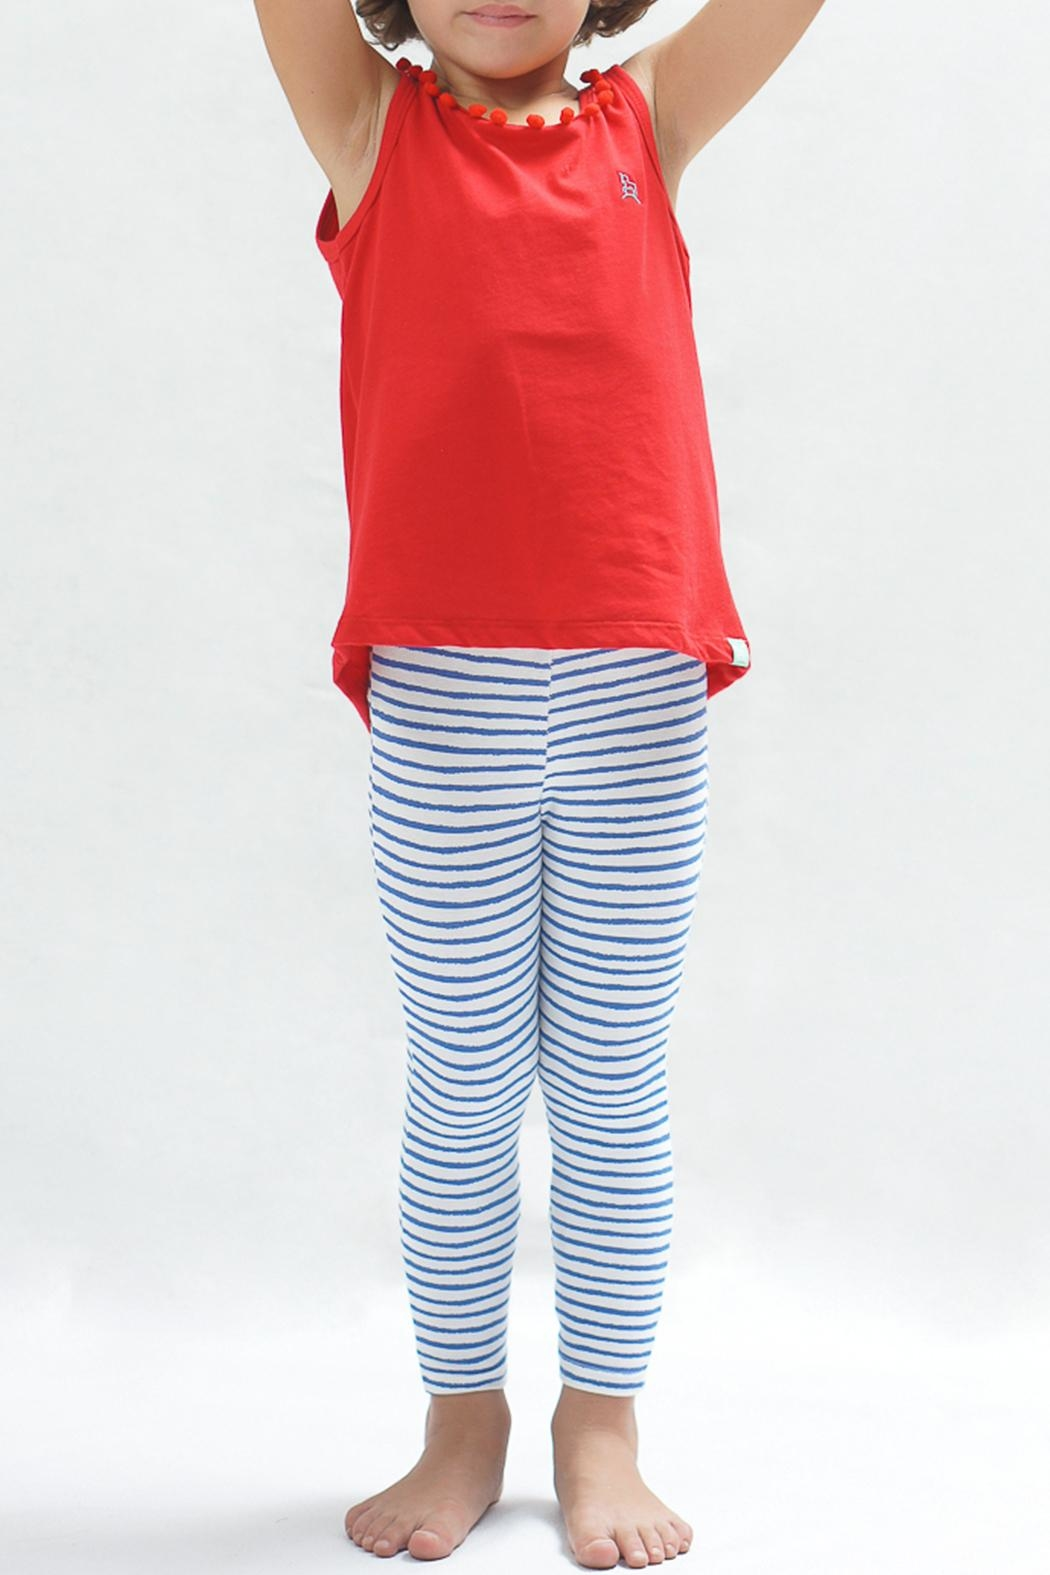 PPoT Kids Stripes Leggings Set - Main Image